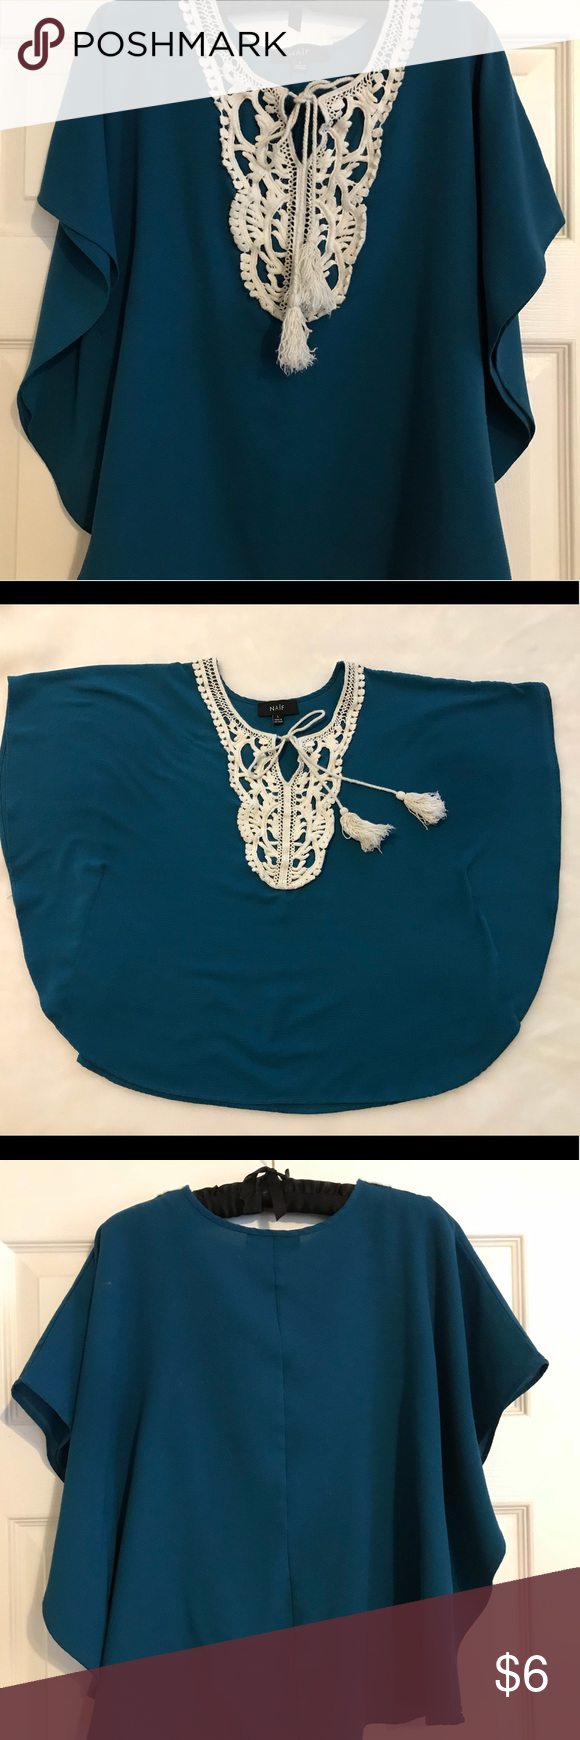 Naïf flows teal blouse Flowy teal blouse with lacy closure detail. Naif Tops Blouses